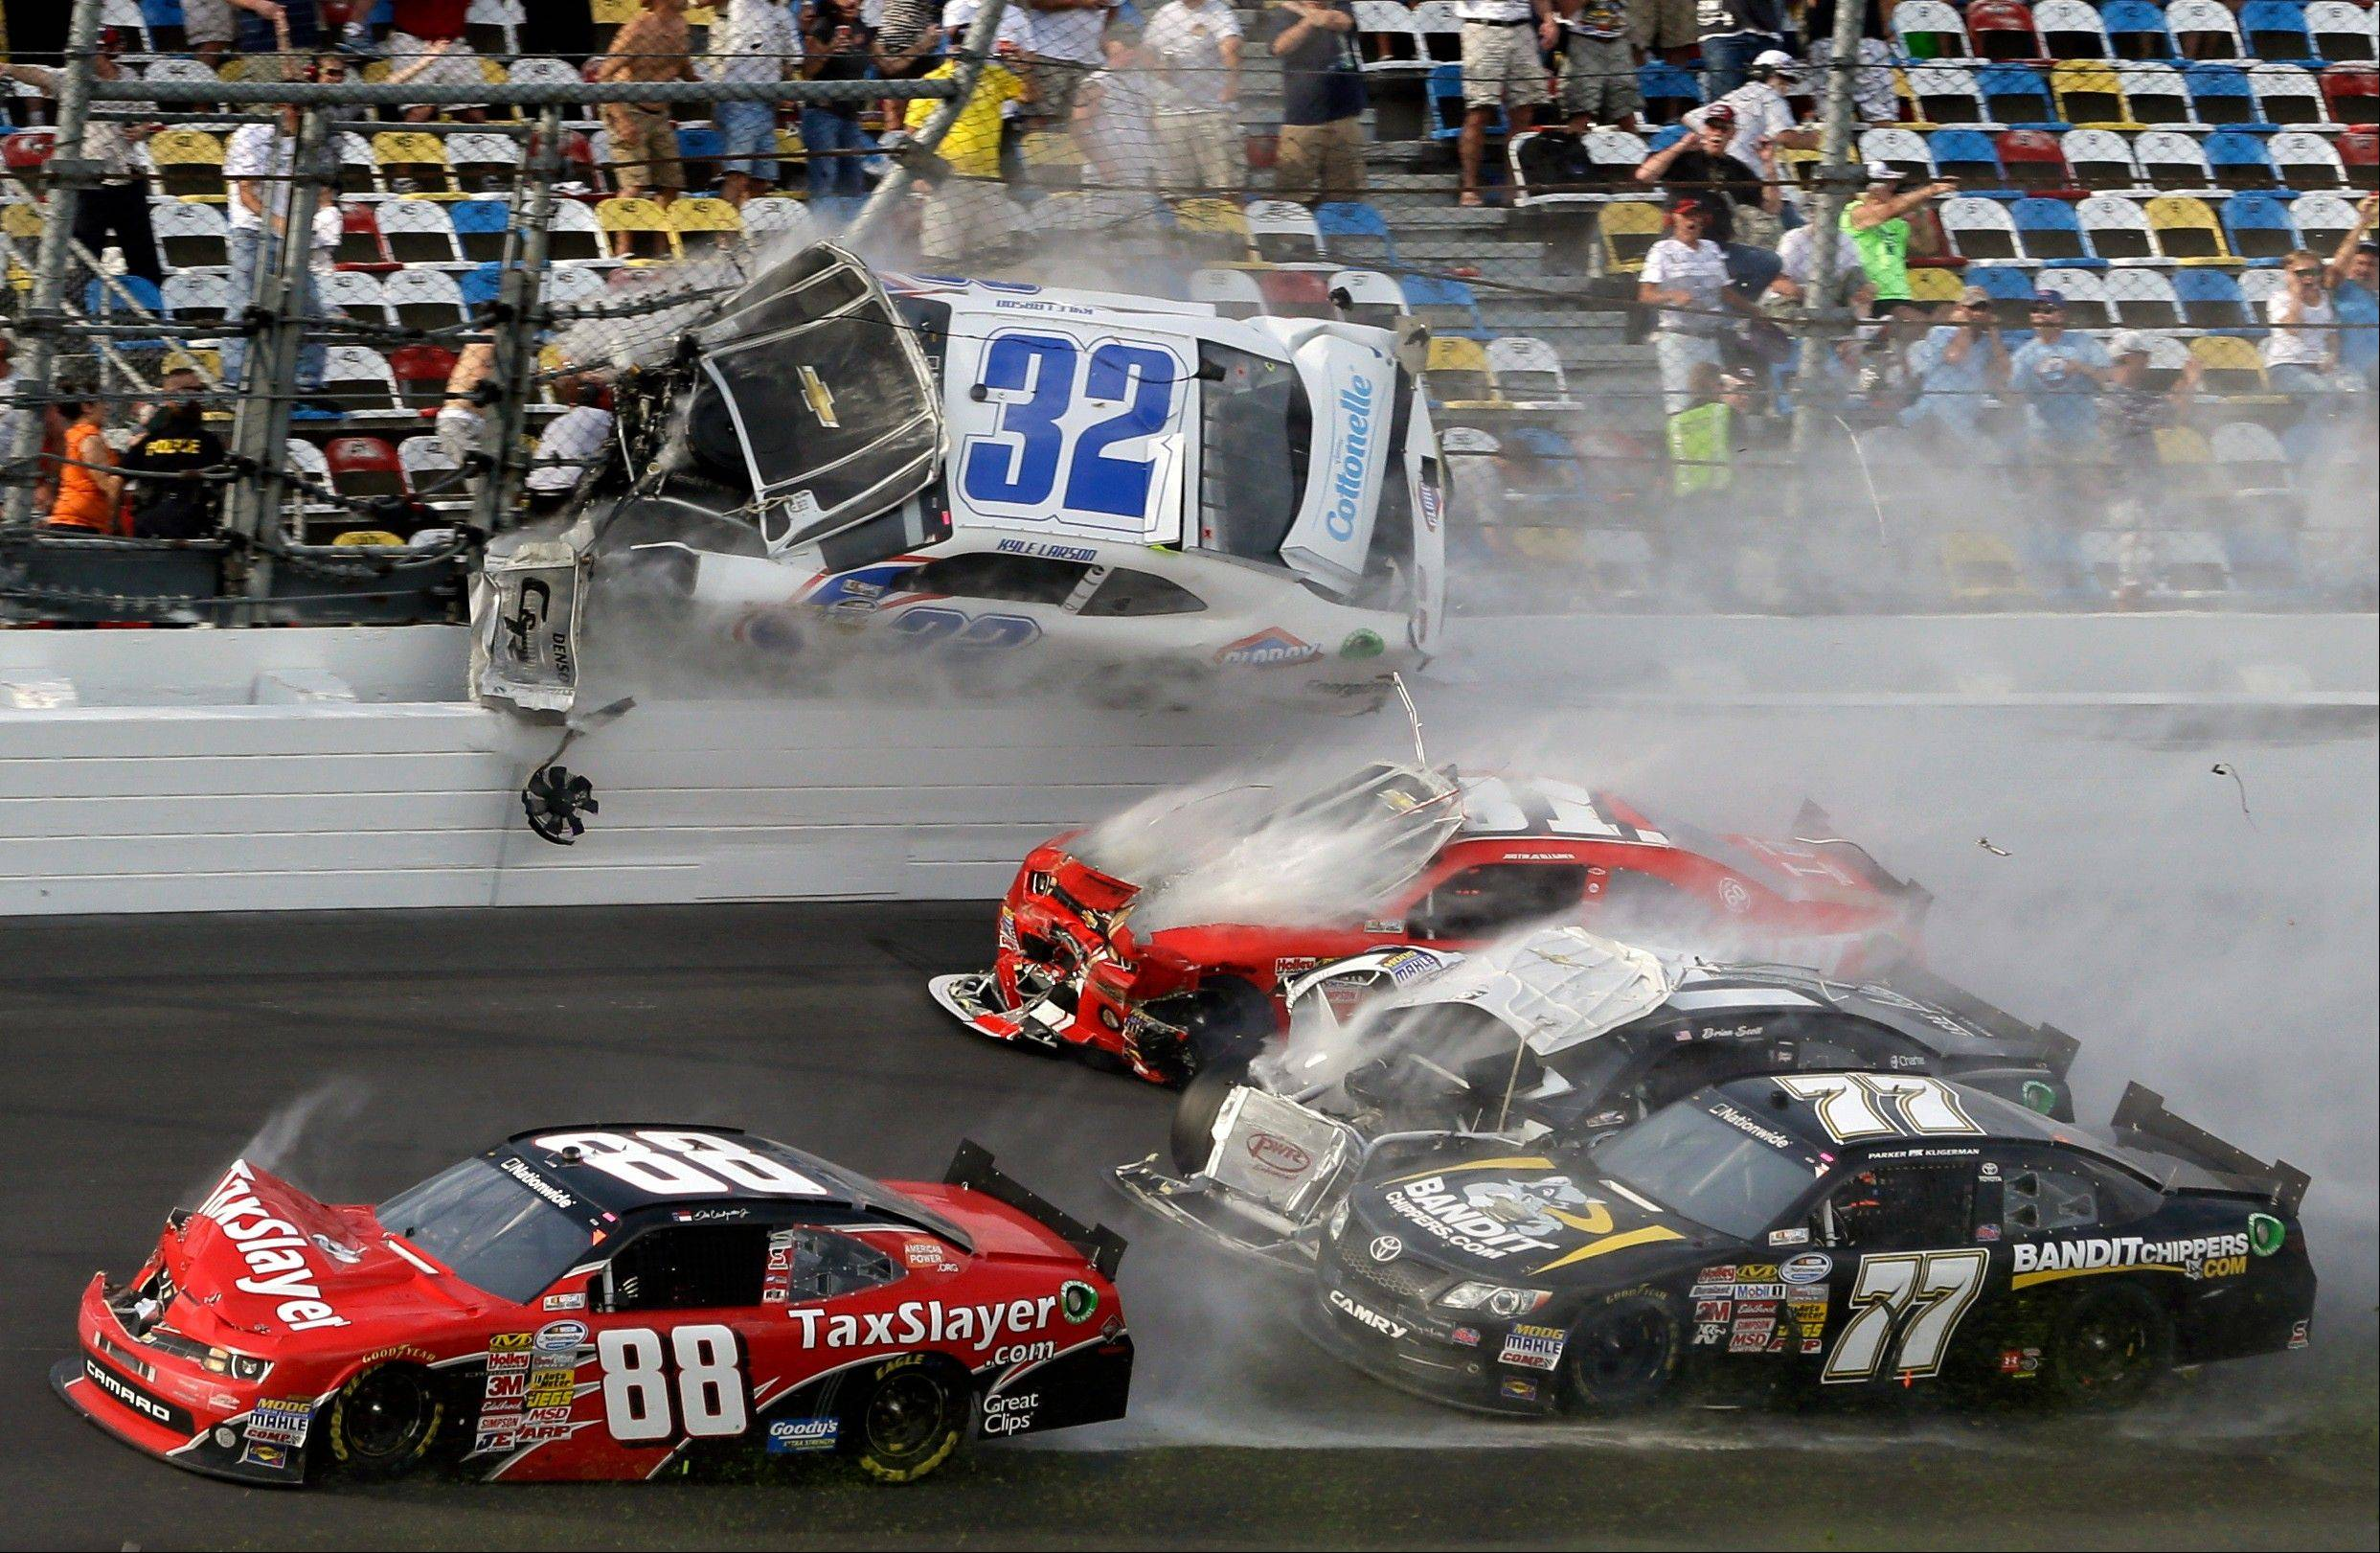 Kyle Larson (32) goes airborne into the catch fence in a multi-car crash including Dale Earnhardt Jr. (88), Parker Kligerman (77), Justin Allgaier (31) and Brian Scott (2) during the final lap of the NASCAR Nationwide Series auto race at Daytona International Speedway.